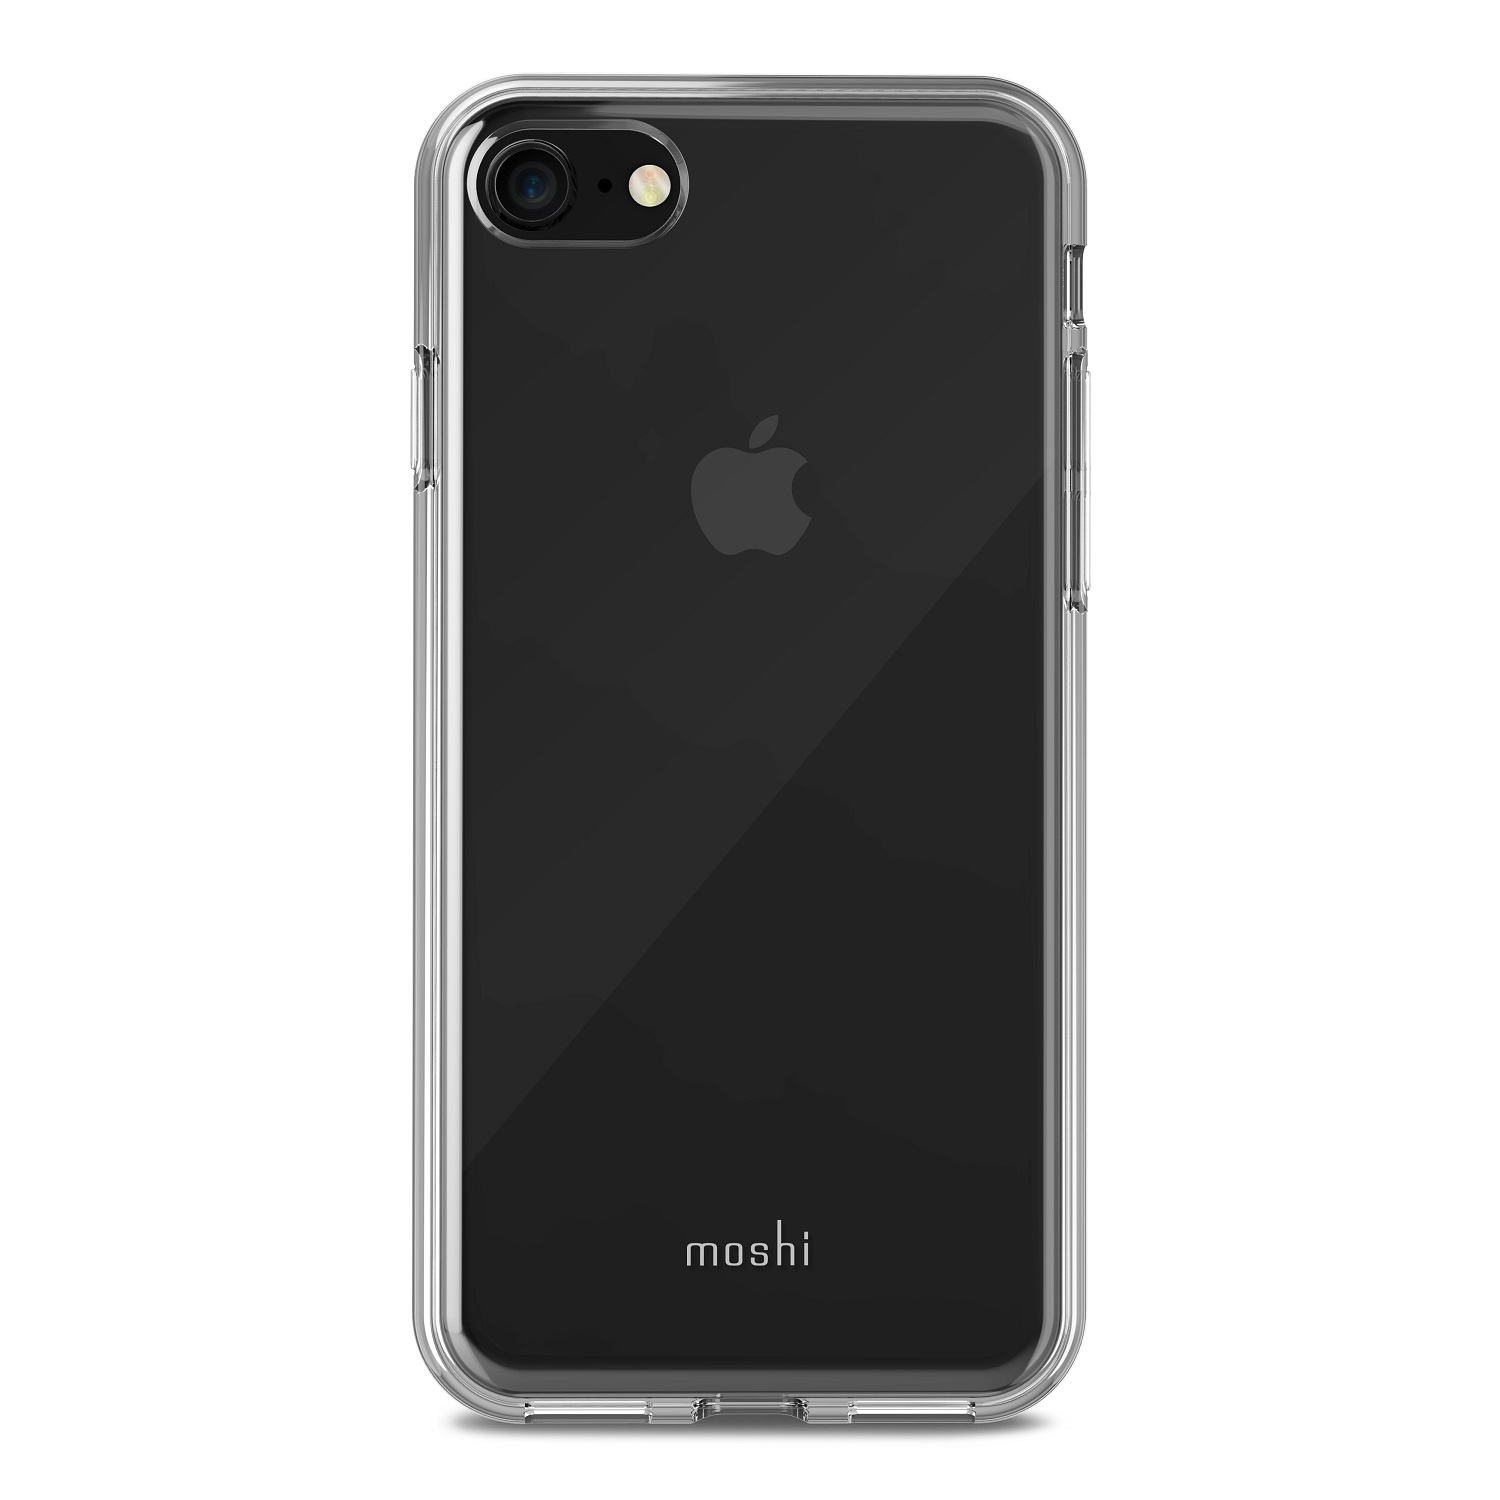 Moshi Vitros Case for iPhone 8/7